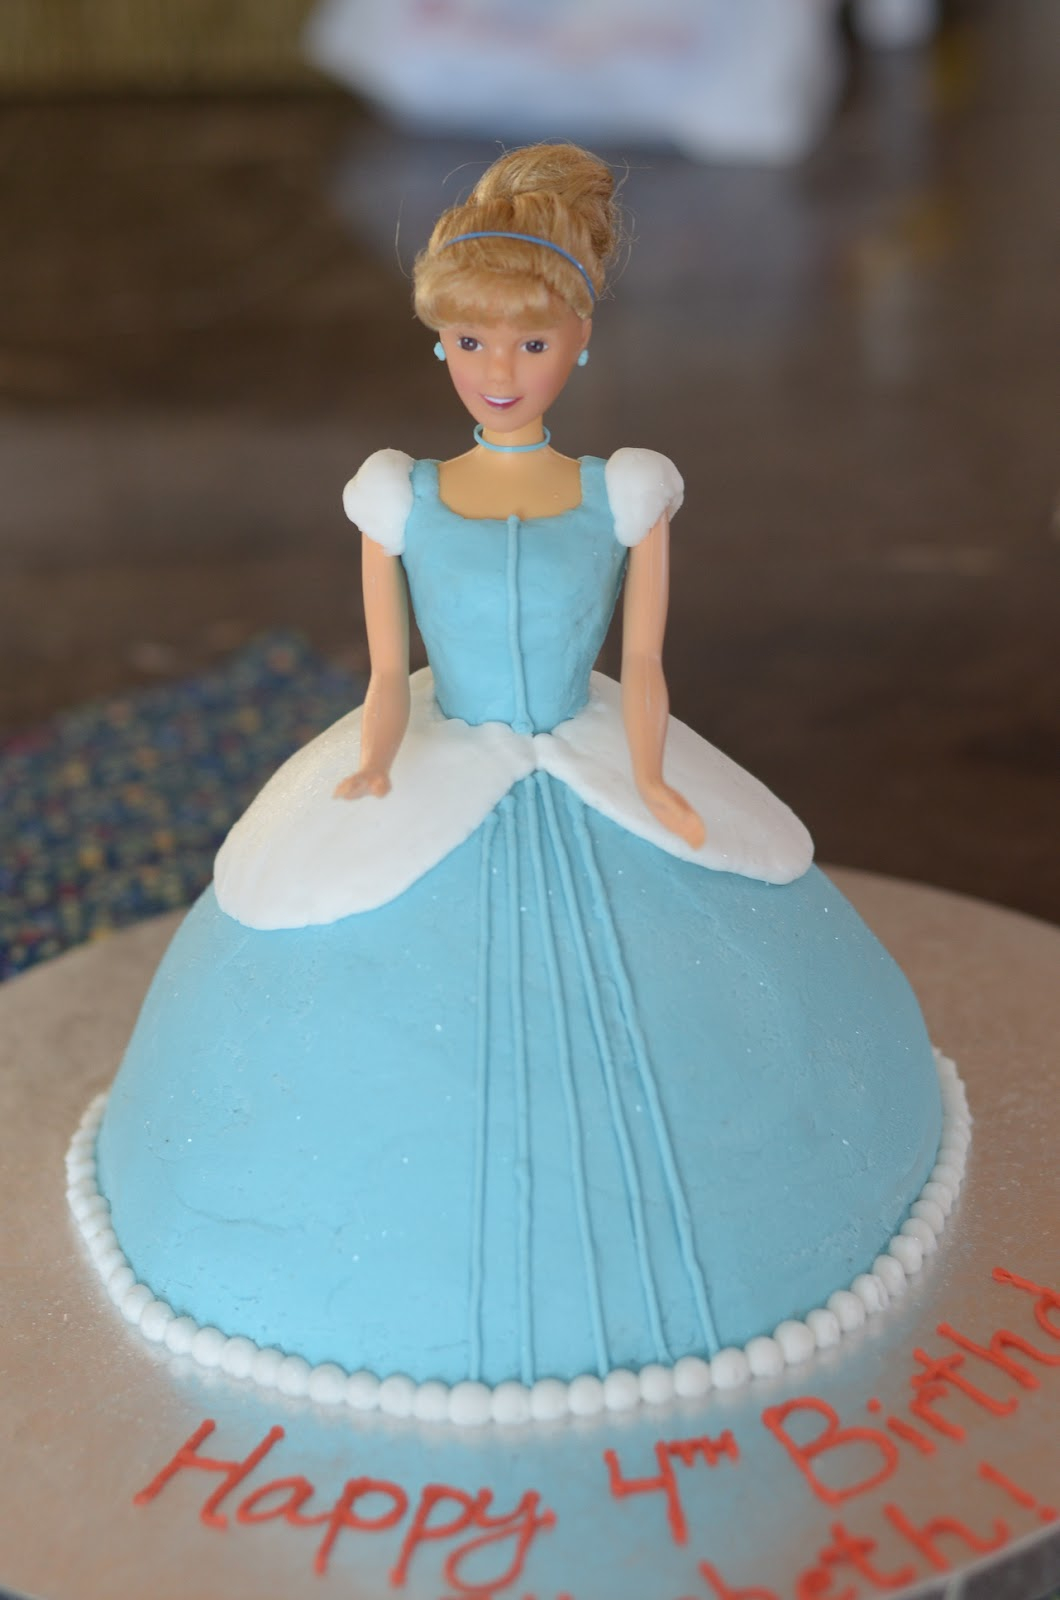 Cinderella Birthday Cakes Cinderella Cakes Decoration Ideas Little Birthday Cakes